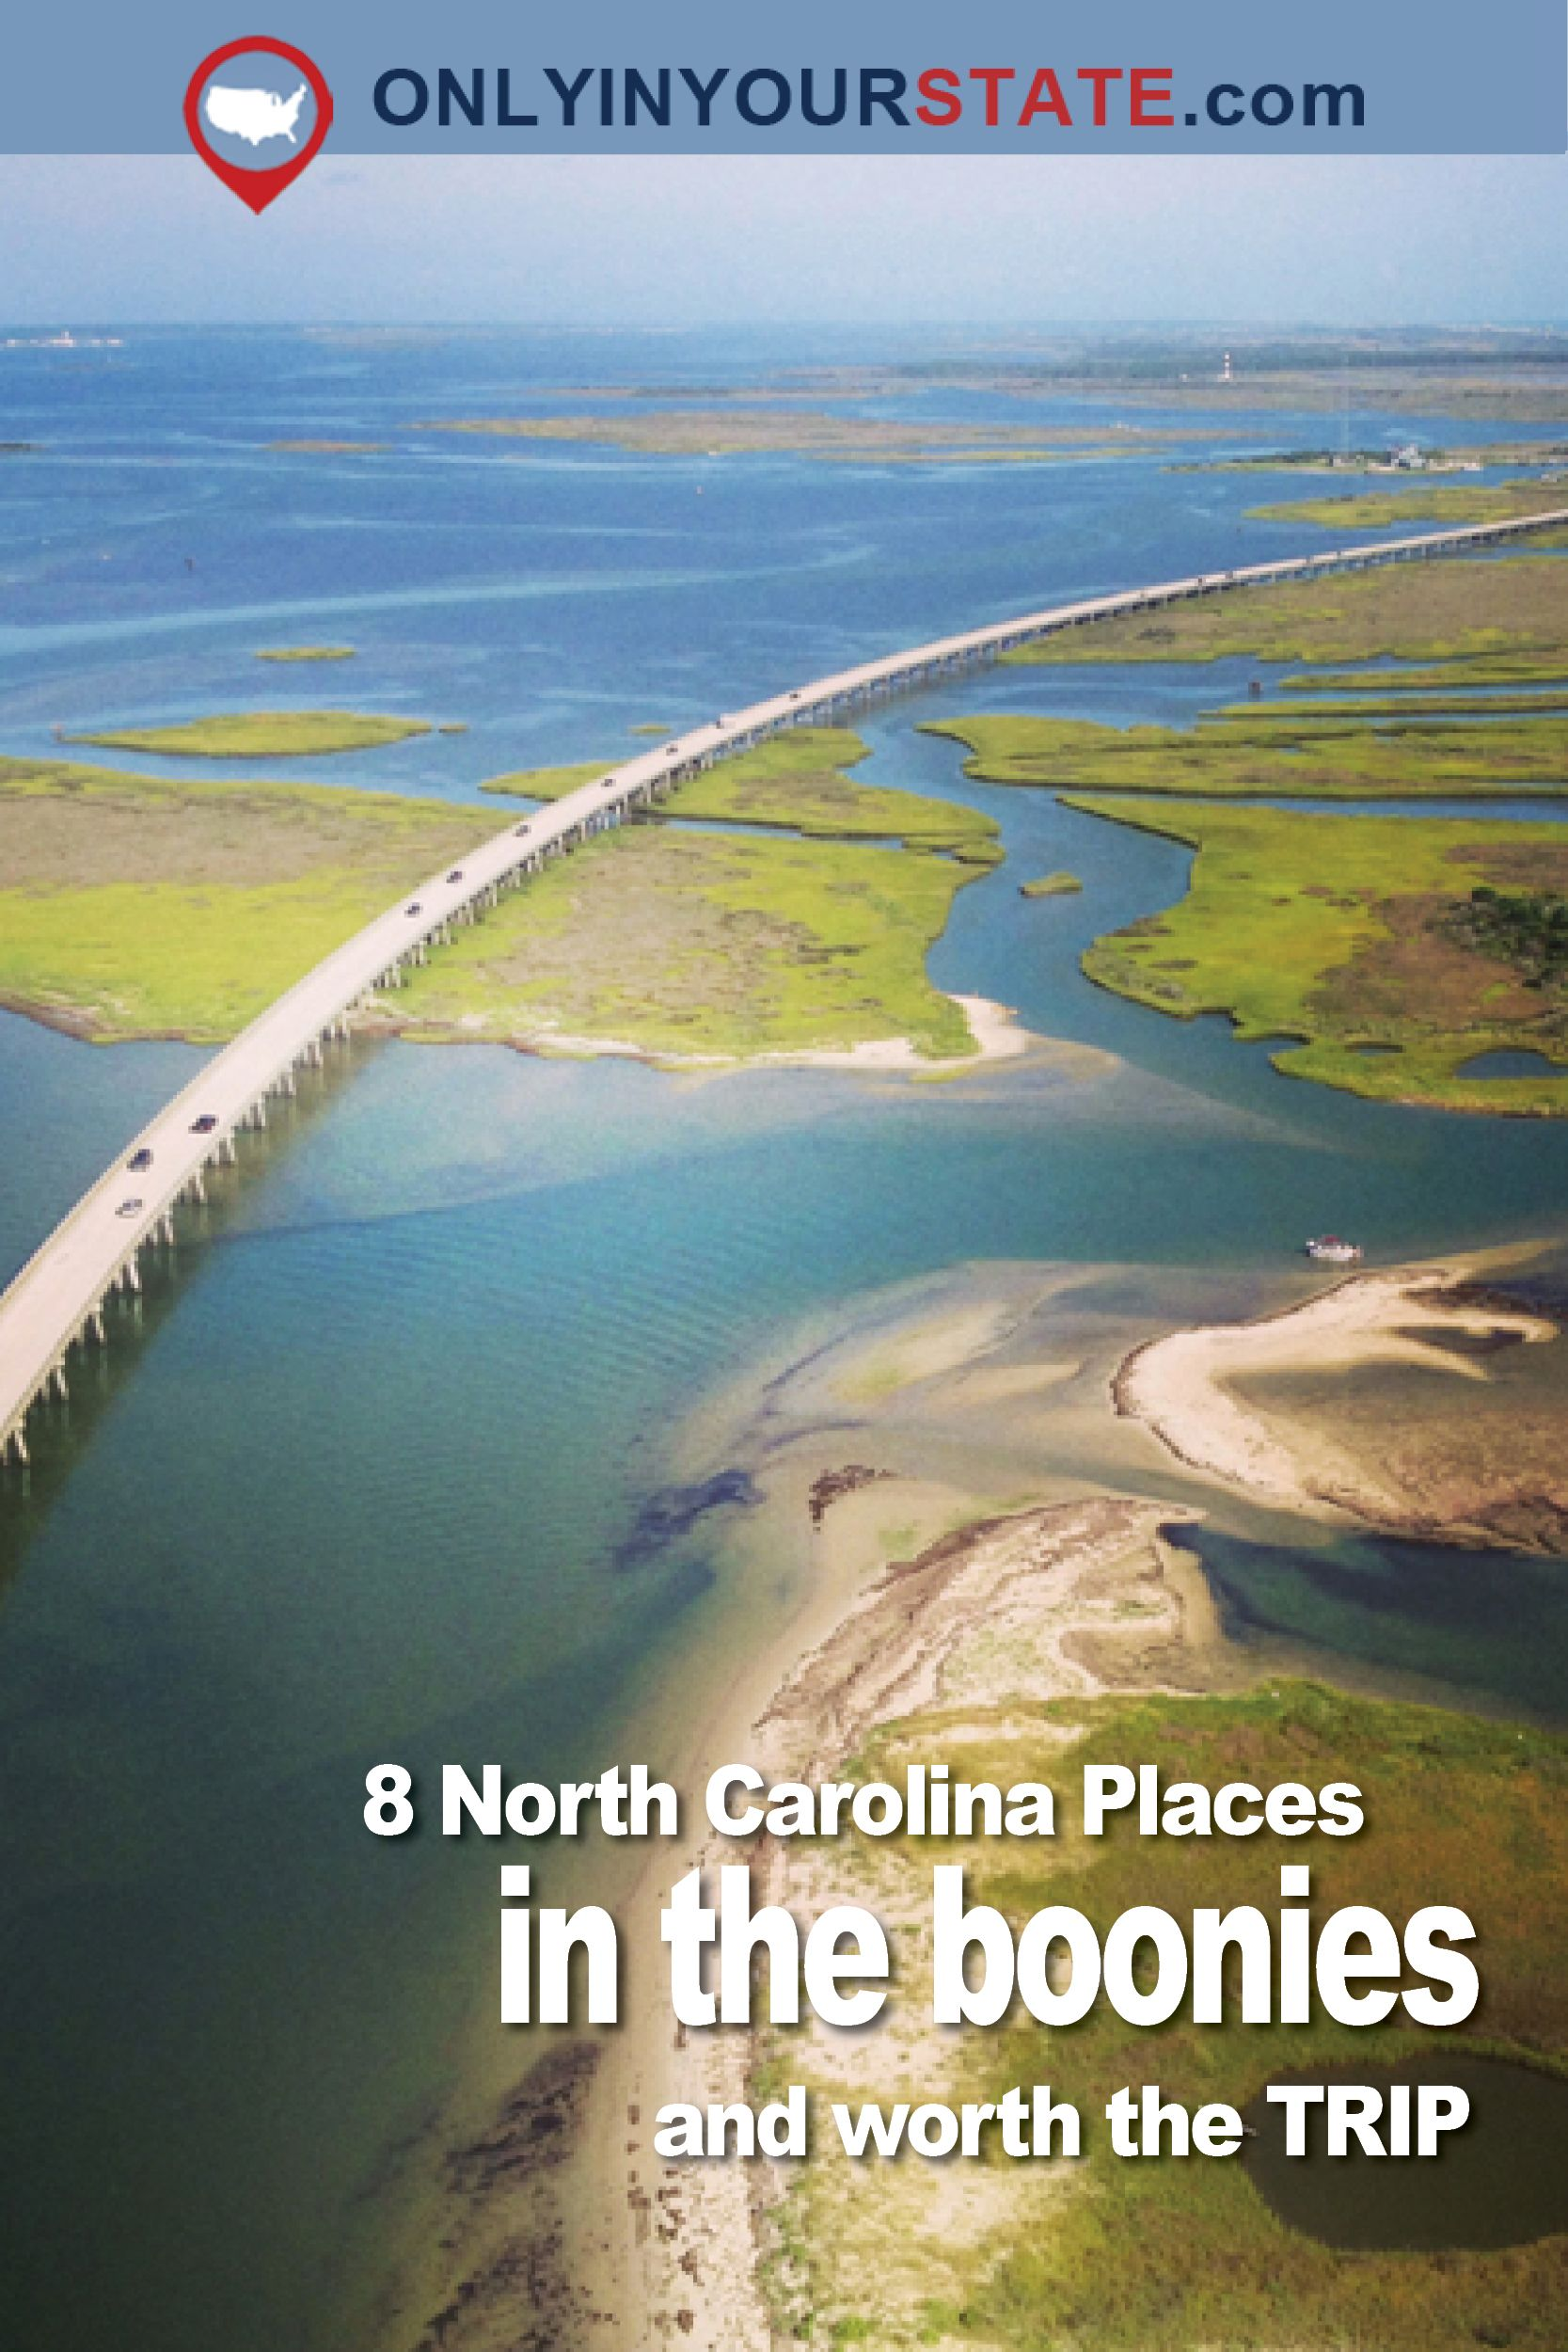 Travel | North Carolina | Remote Places | Remote Destinations | Off The Beaten Path | Getaways | Unique Attractions | Middle of Nowhere